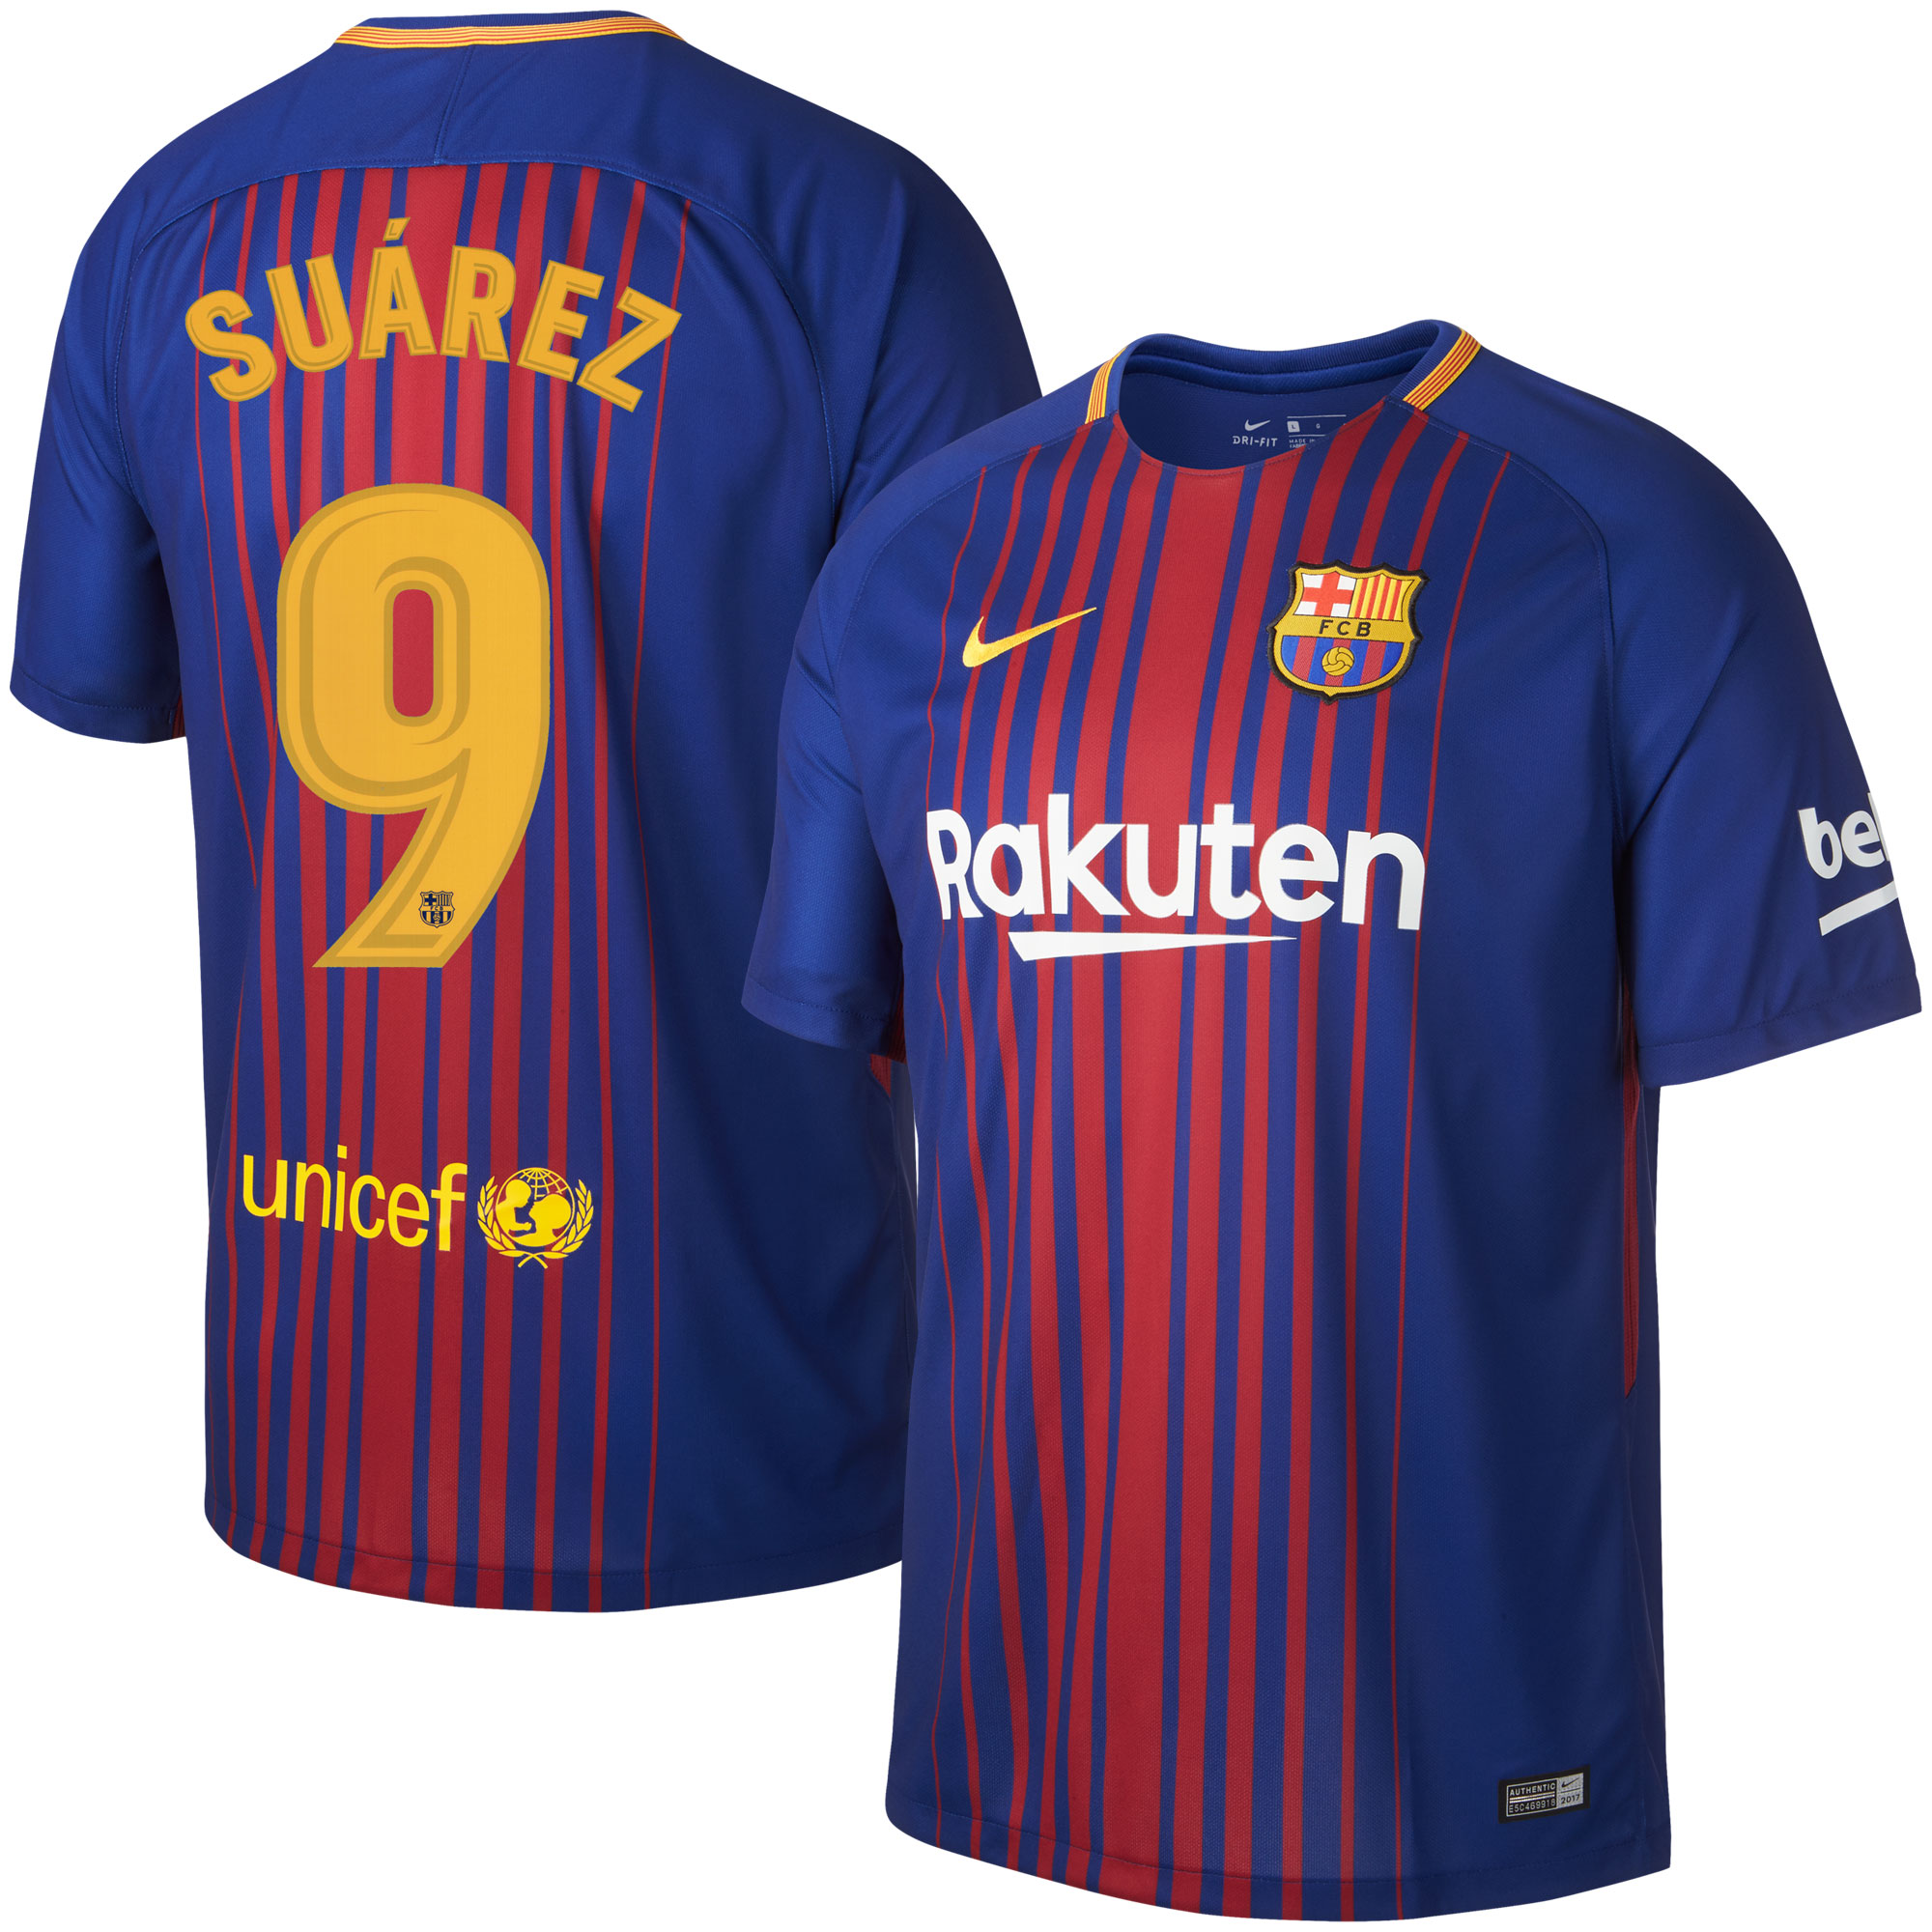 Barcelona Home Suárez Jersey 2017 / 2018 (Official Printing) - XL